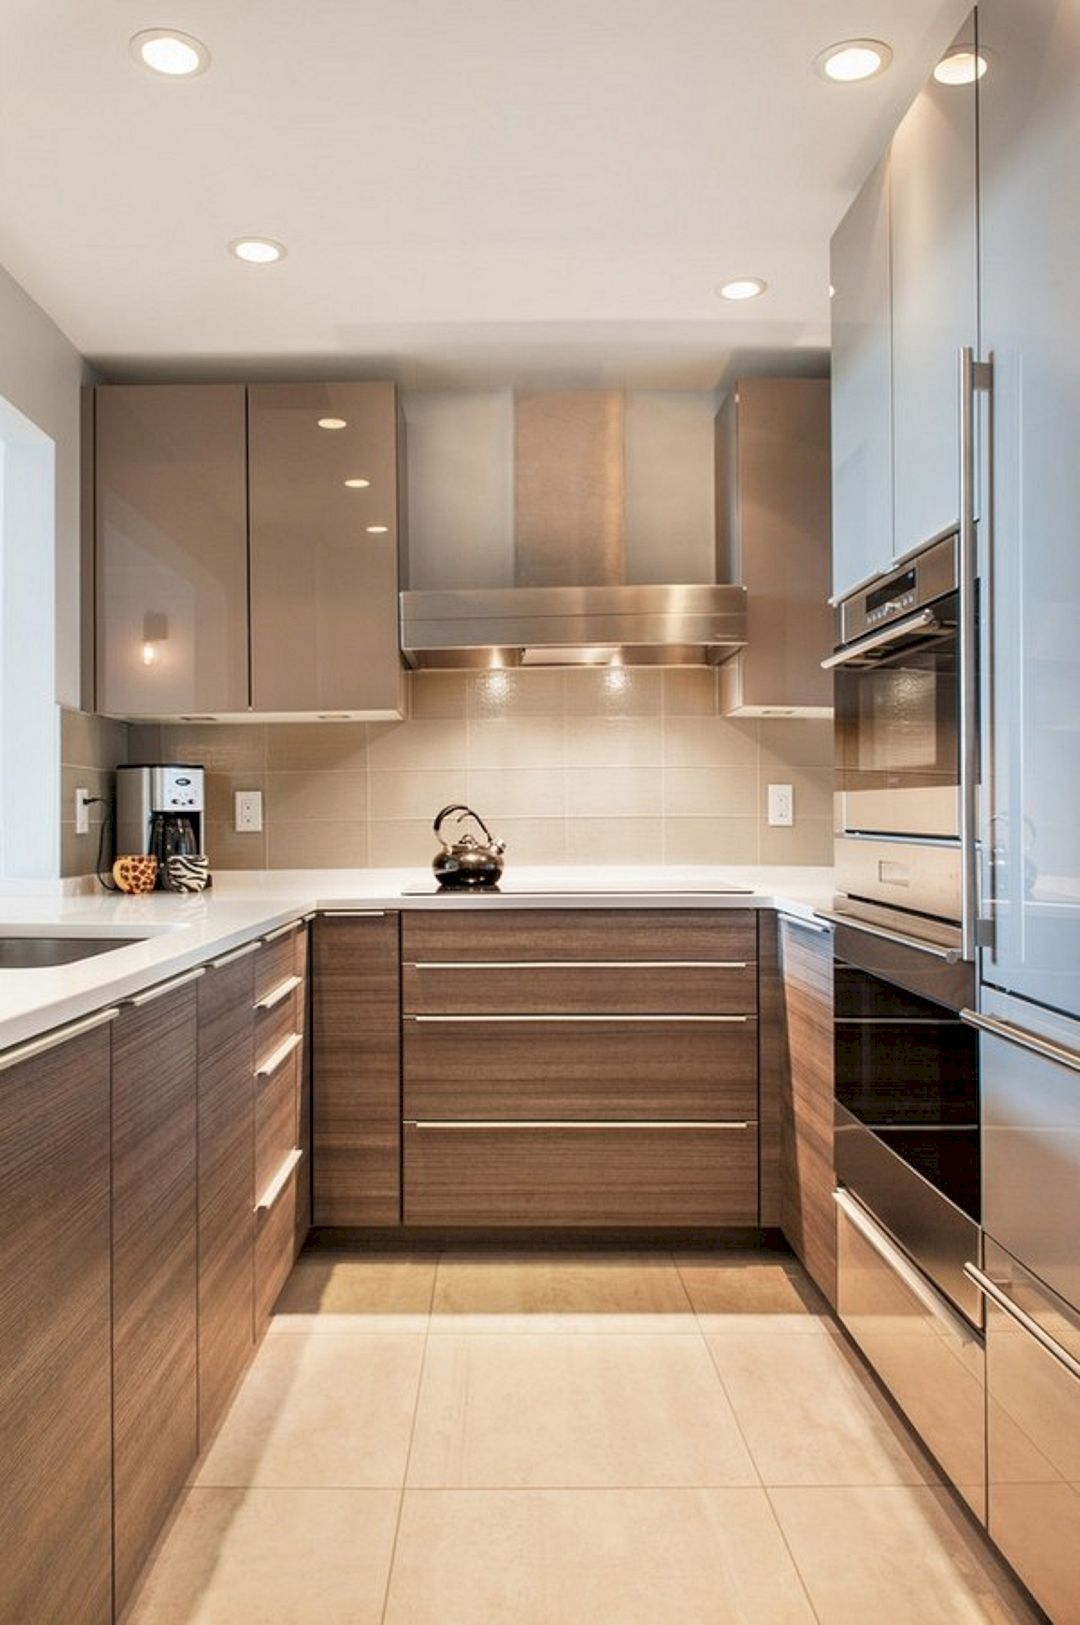 70 Top And The Most Stunning Modern Kitchen Design For Your Perfect Home Https Fresho Kitchen Design Modern Small Small Modern Kitchens Kitchen Design Small